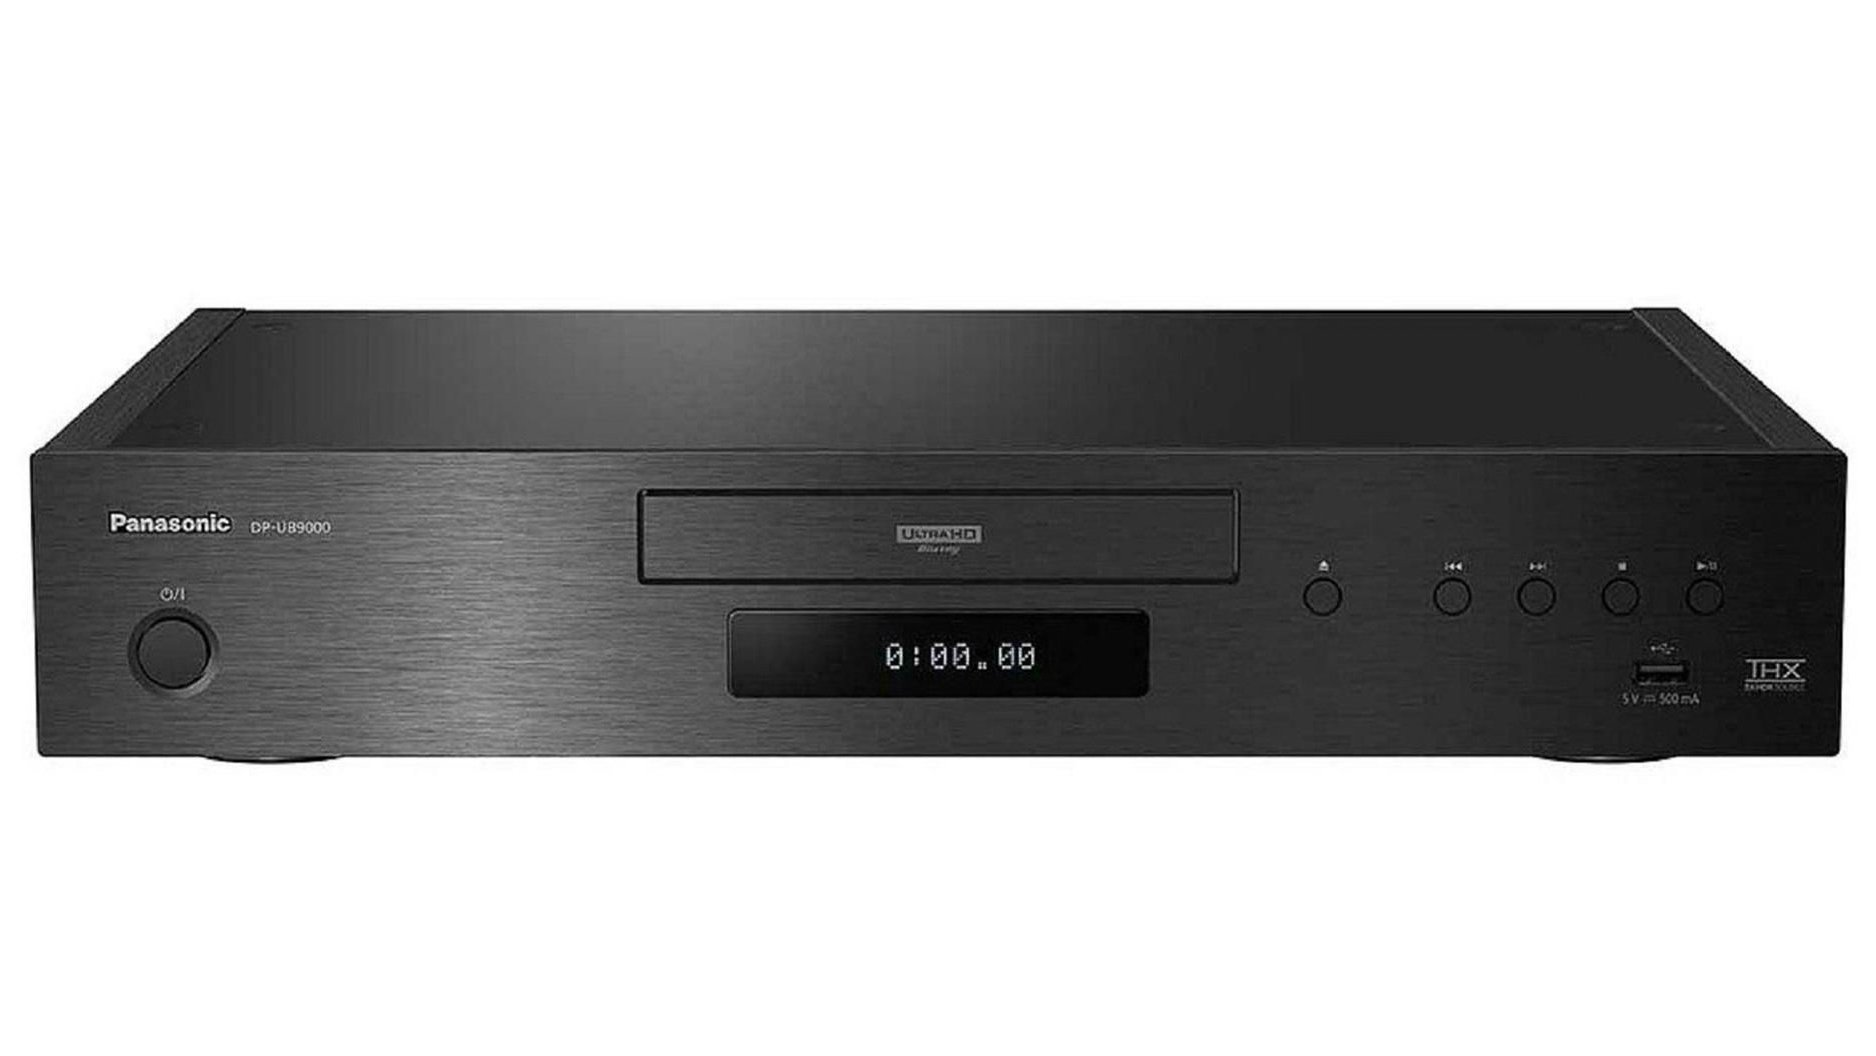 blu ray player software crack